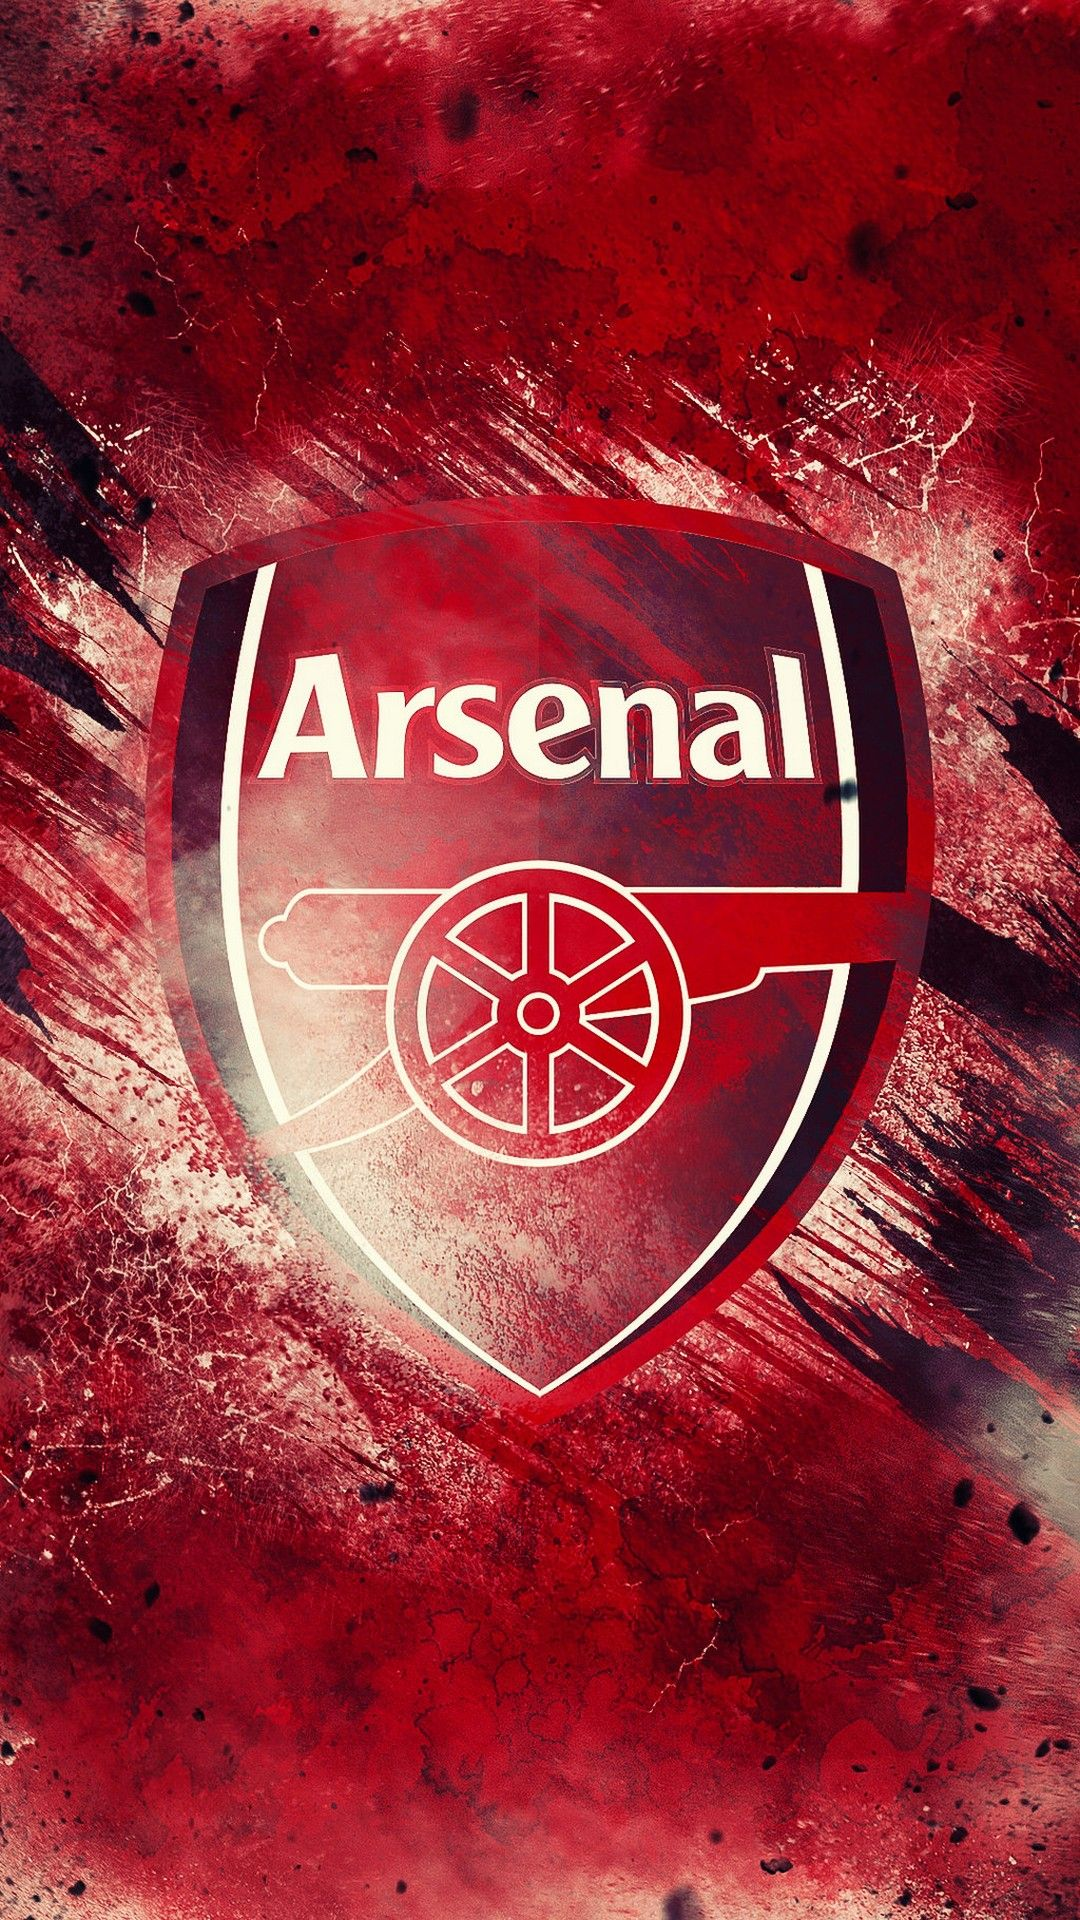 Arsenal Iphone Wallpaper Hd Arsenal Pinterest Arsenal Arsenal